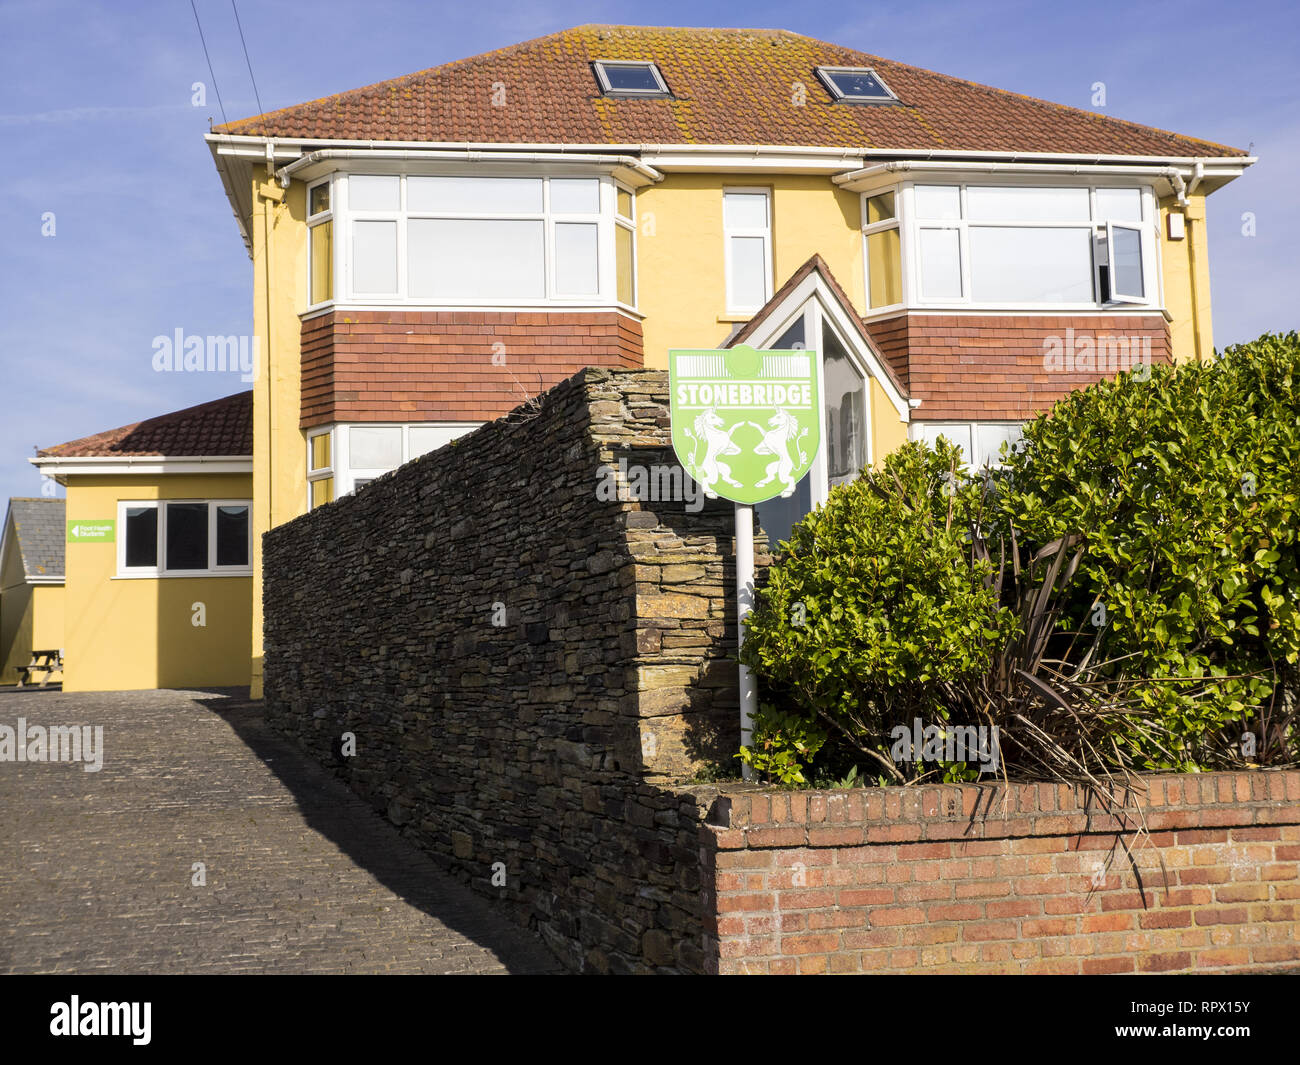 Stonebridge Colleges, a leading home learning college with students around the world, Bude, Cornwall, UK - Stock Image